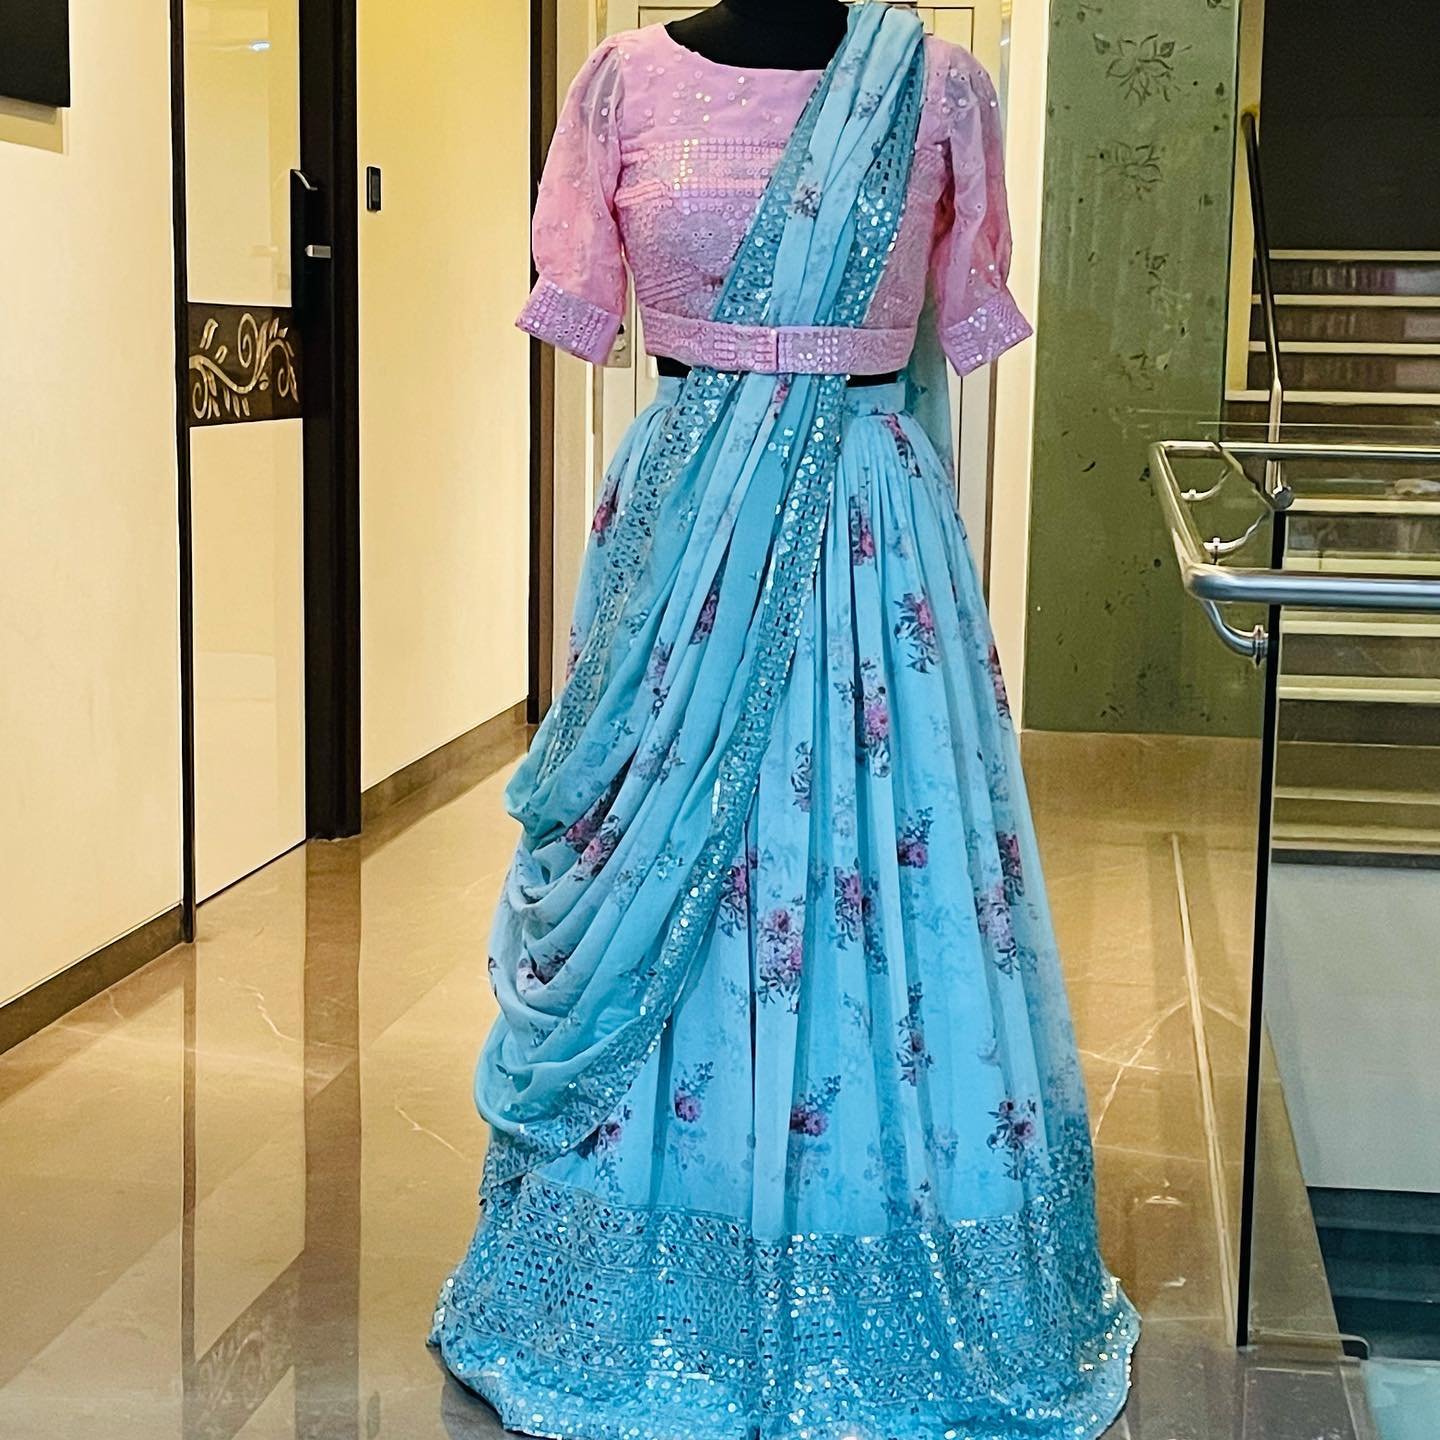 Stunning Georgette floral lehenga and blush pink color mirror work blouse with mirror work chiffon dupatta.  2021-10-12